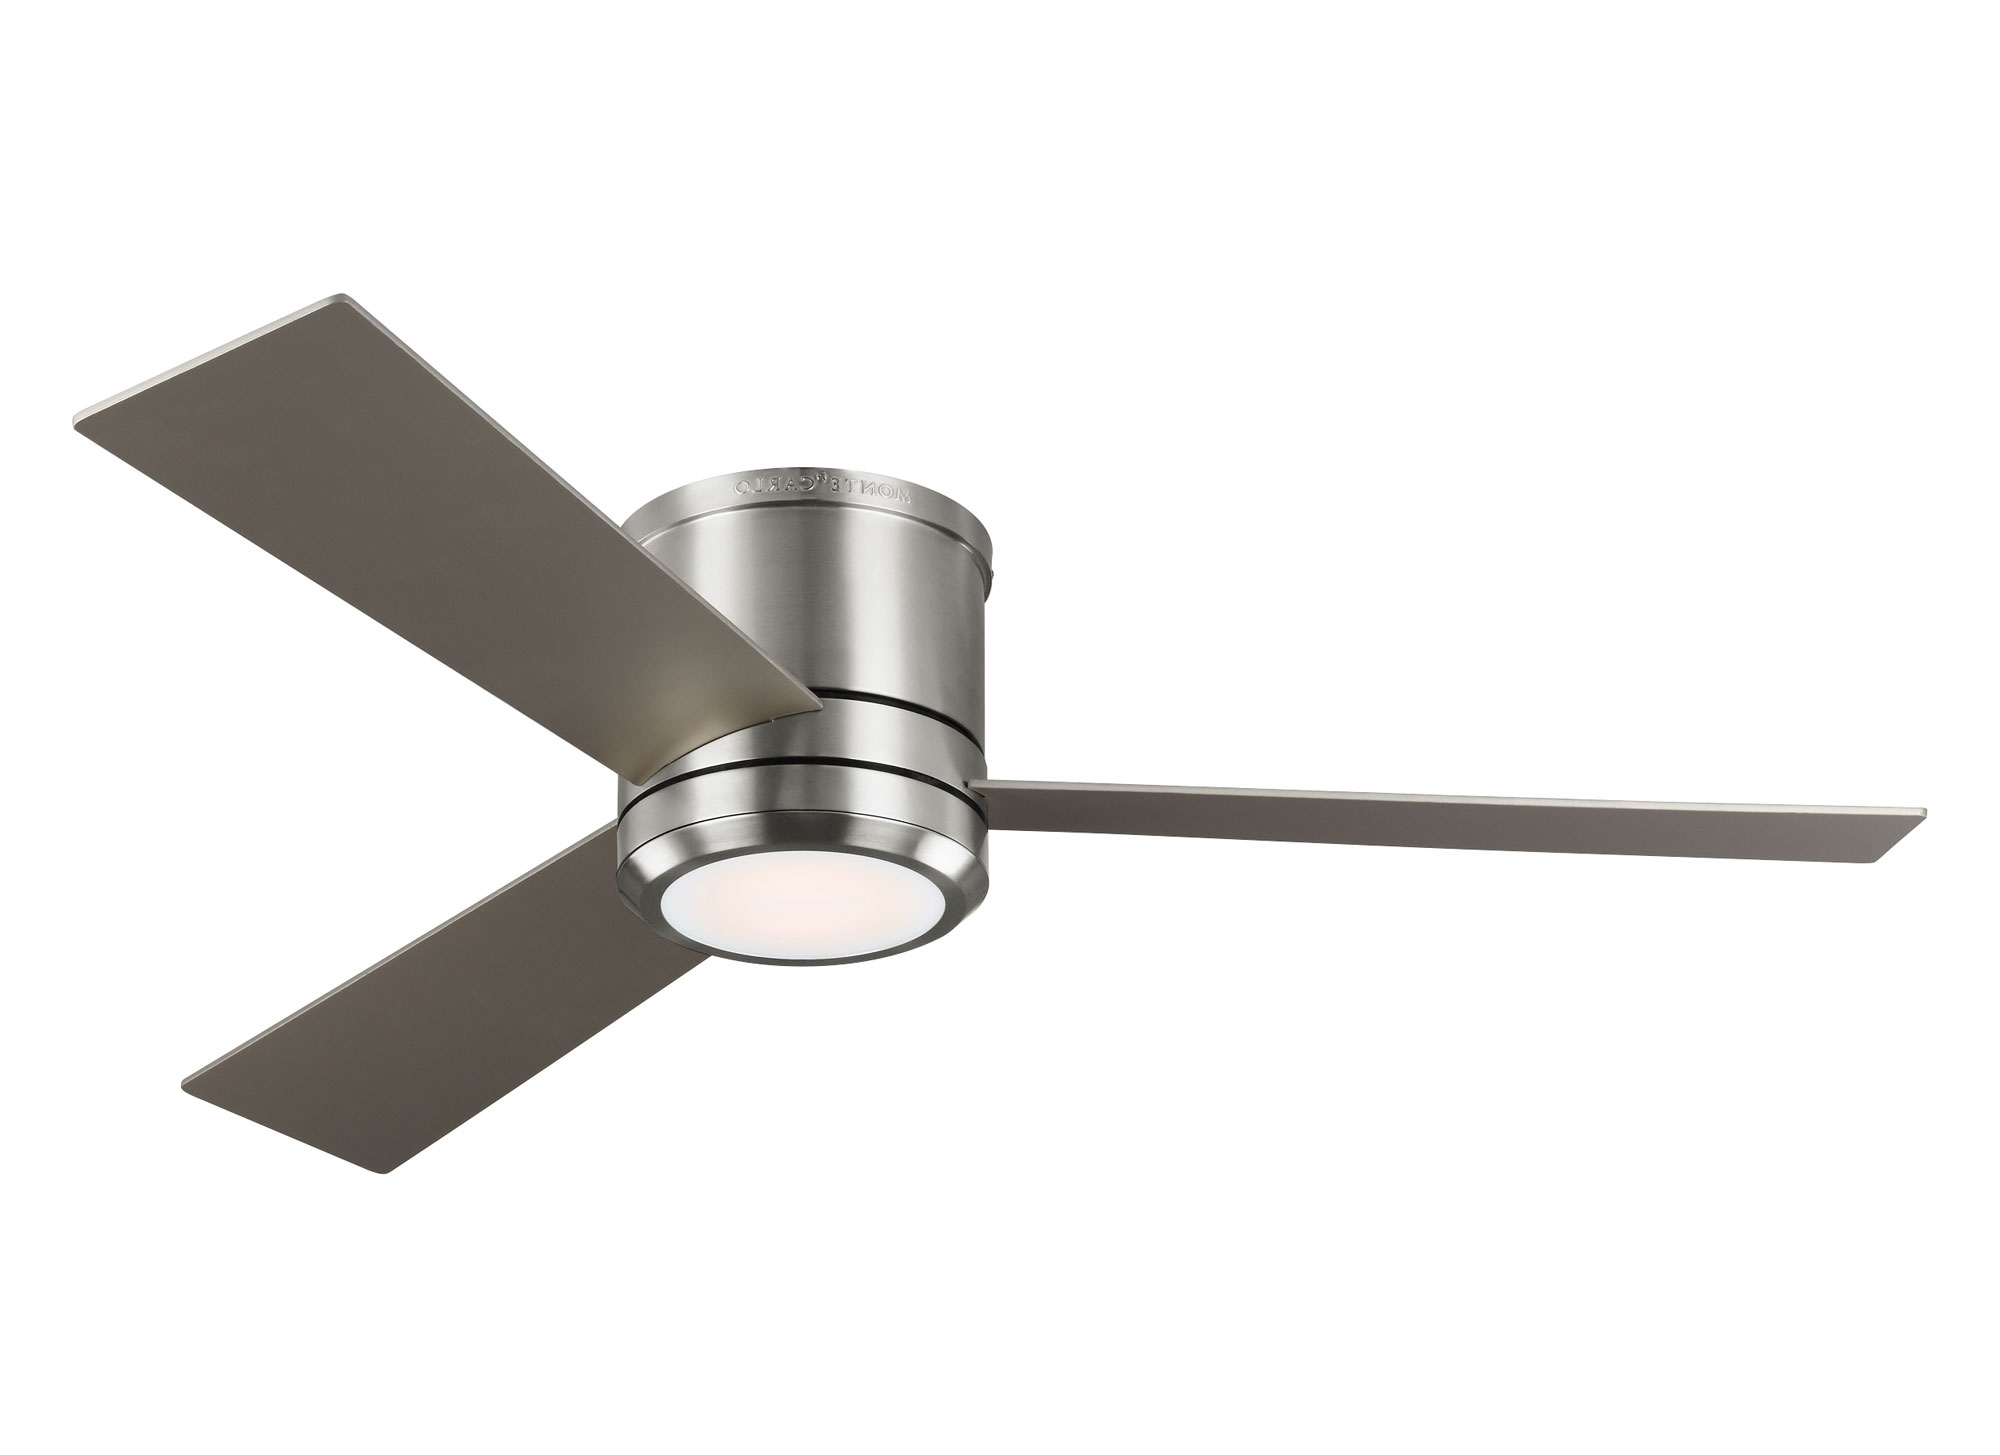 Famous Wet Rated Outdoor Ceiling Fans With Light In Ceiling: Outstanding Wet Rated Outdoor Ceiling Fans Best Outdoor (View 5 of 20)